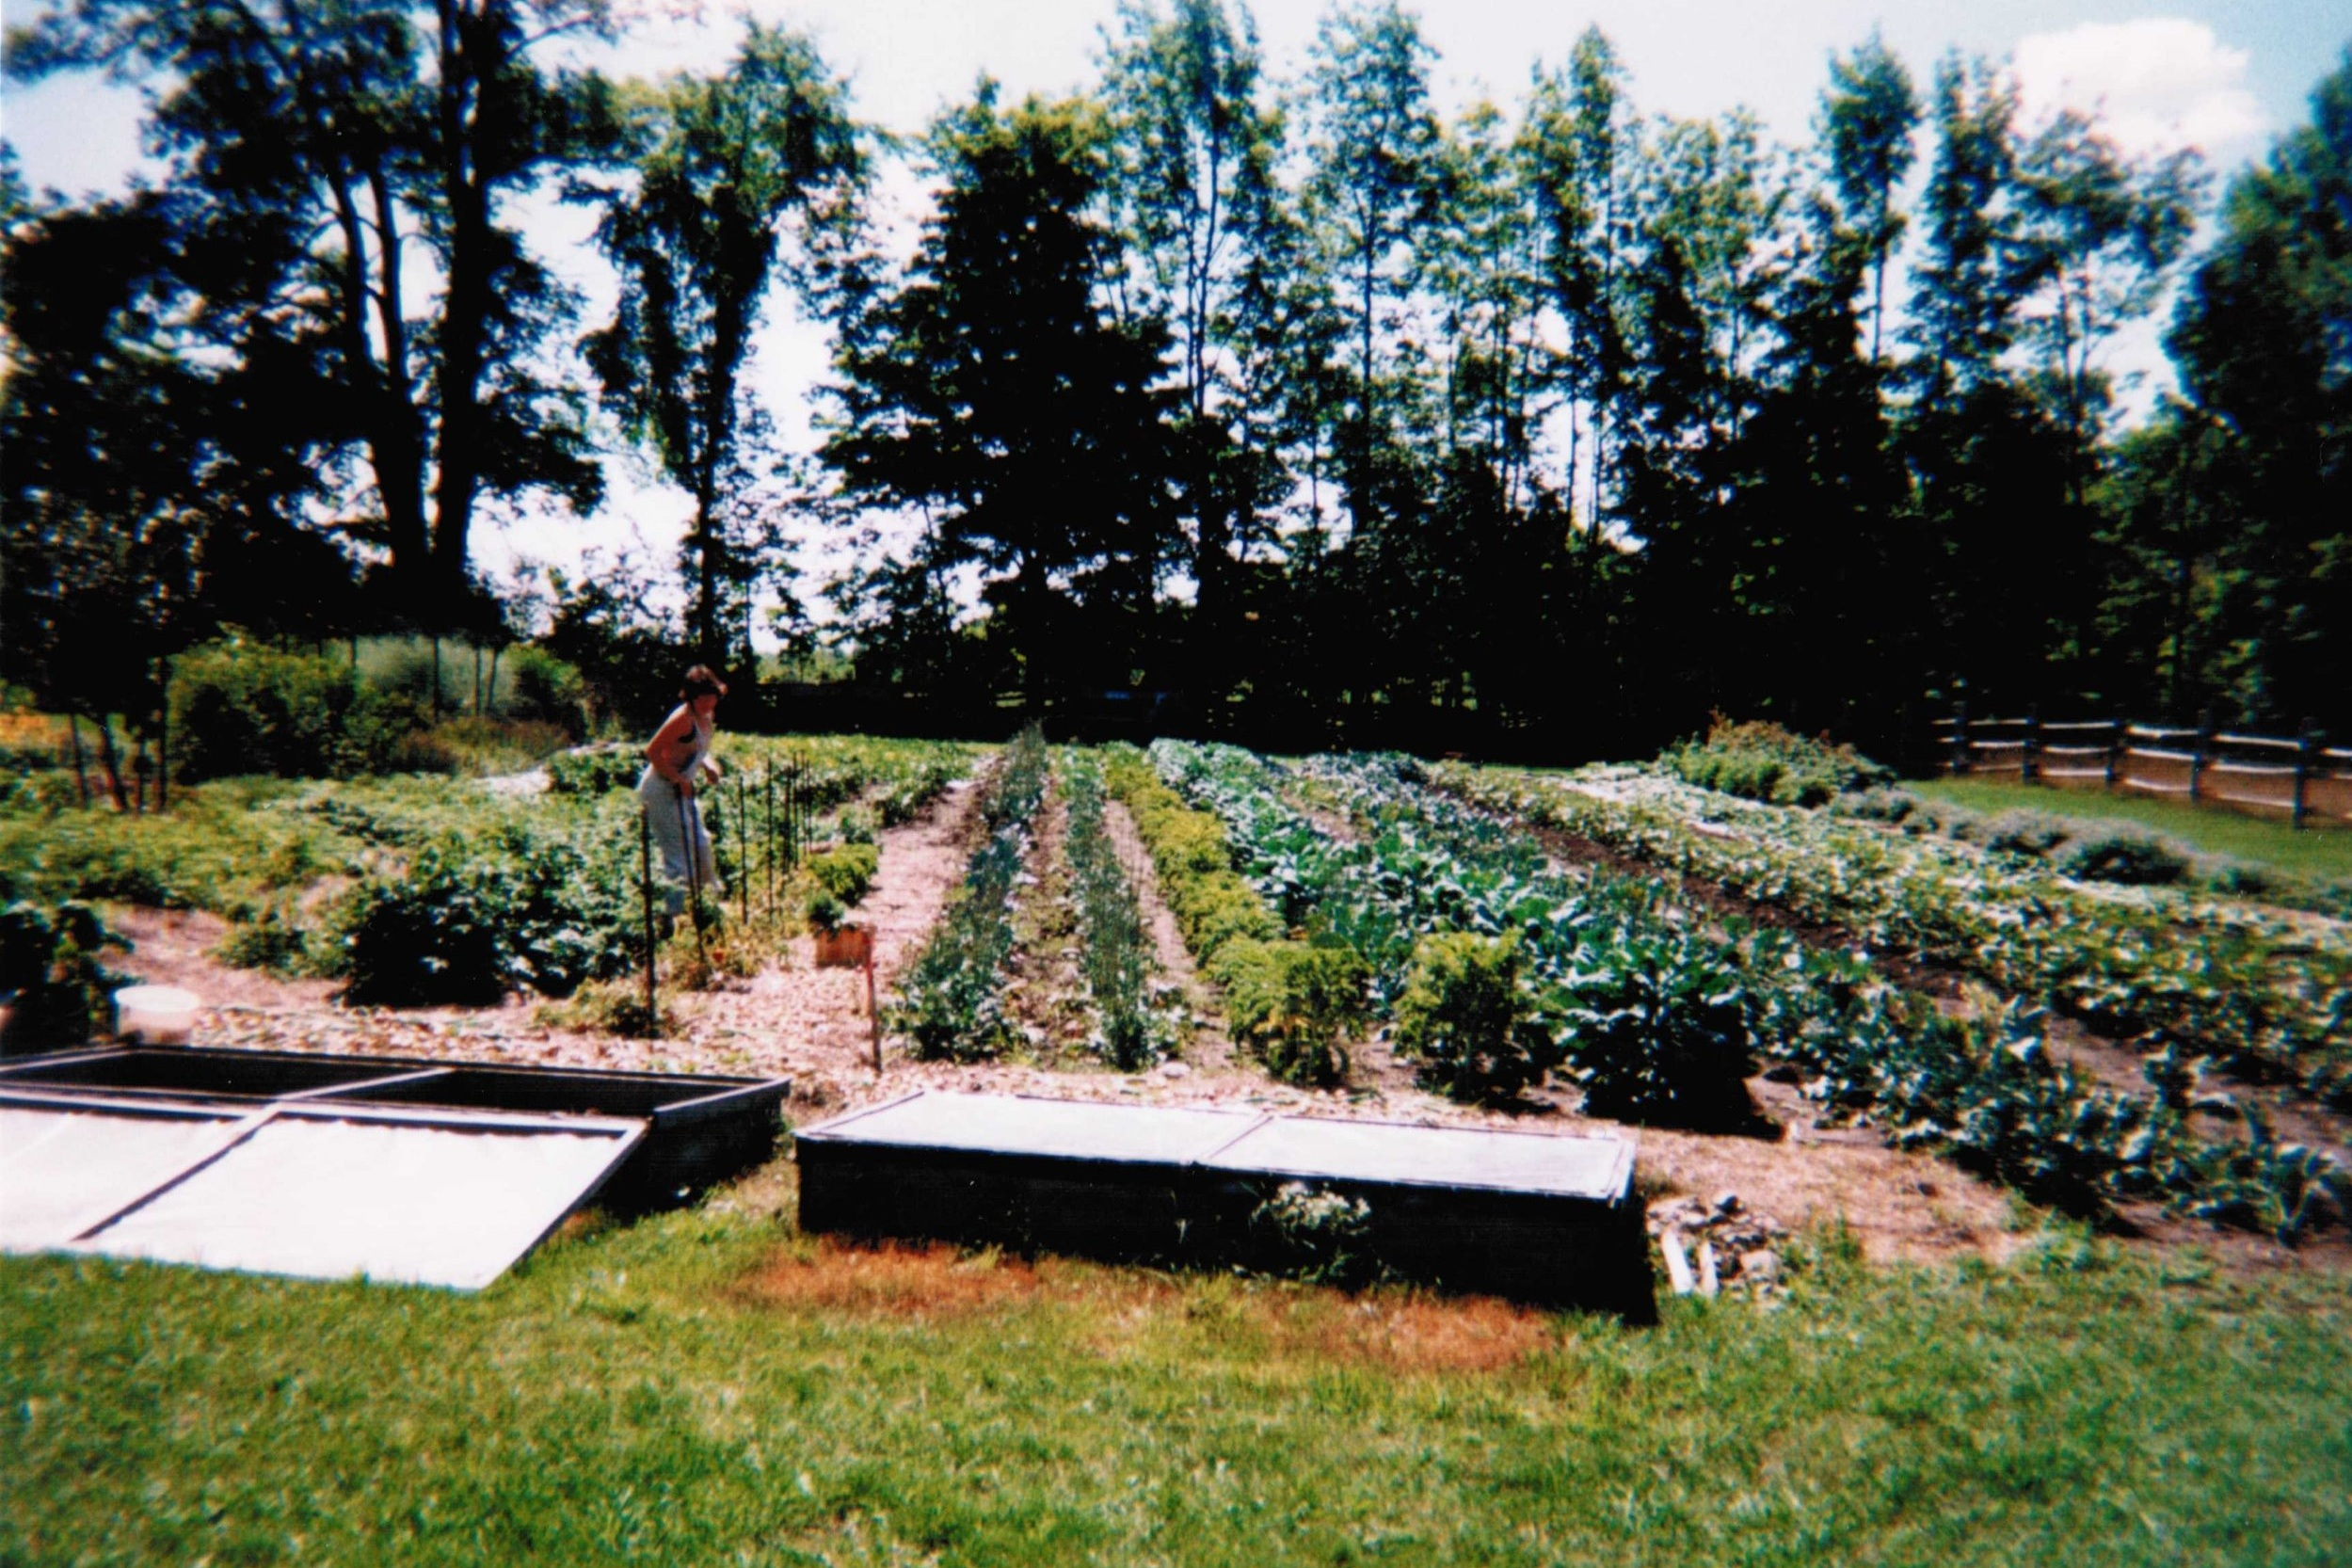 In-Ground - This style of garden uses the ground soil to grow plants. Depending on your soil quality, you may need to amend it with compost and organic matter. This can often be the most economical choice if you have the space for it.